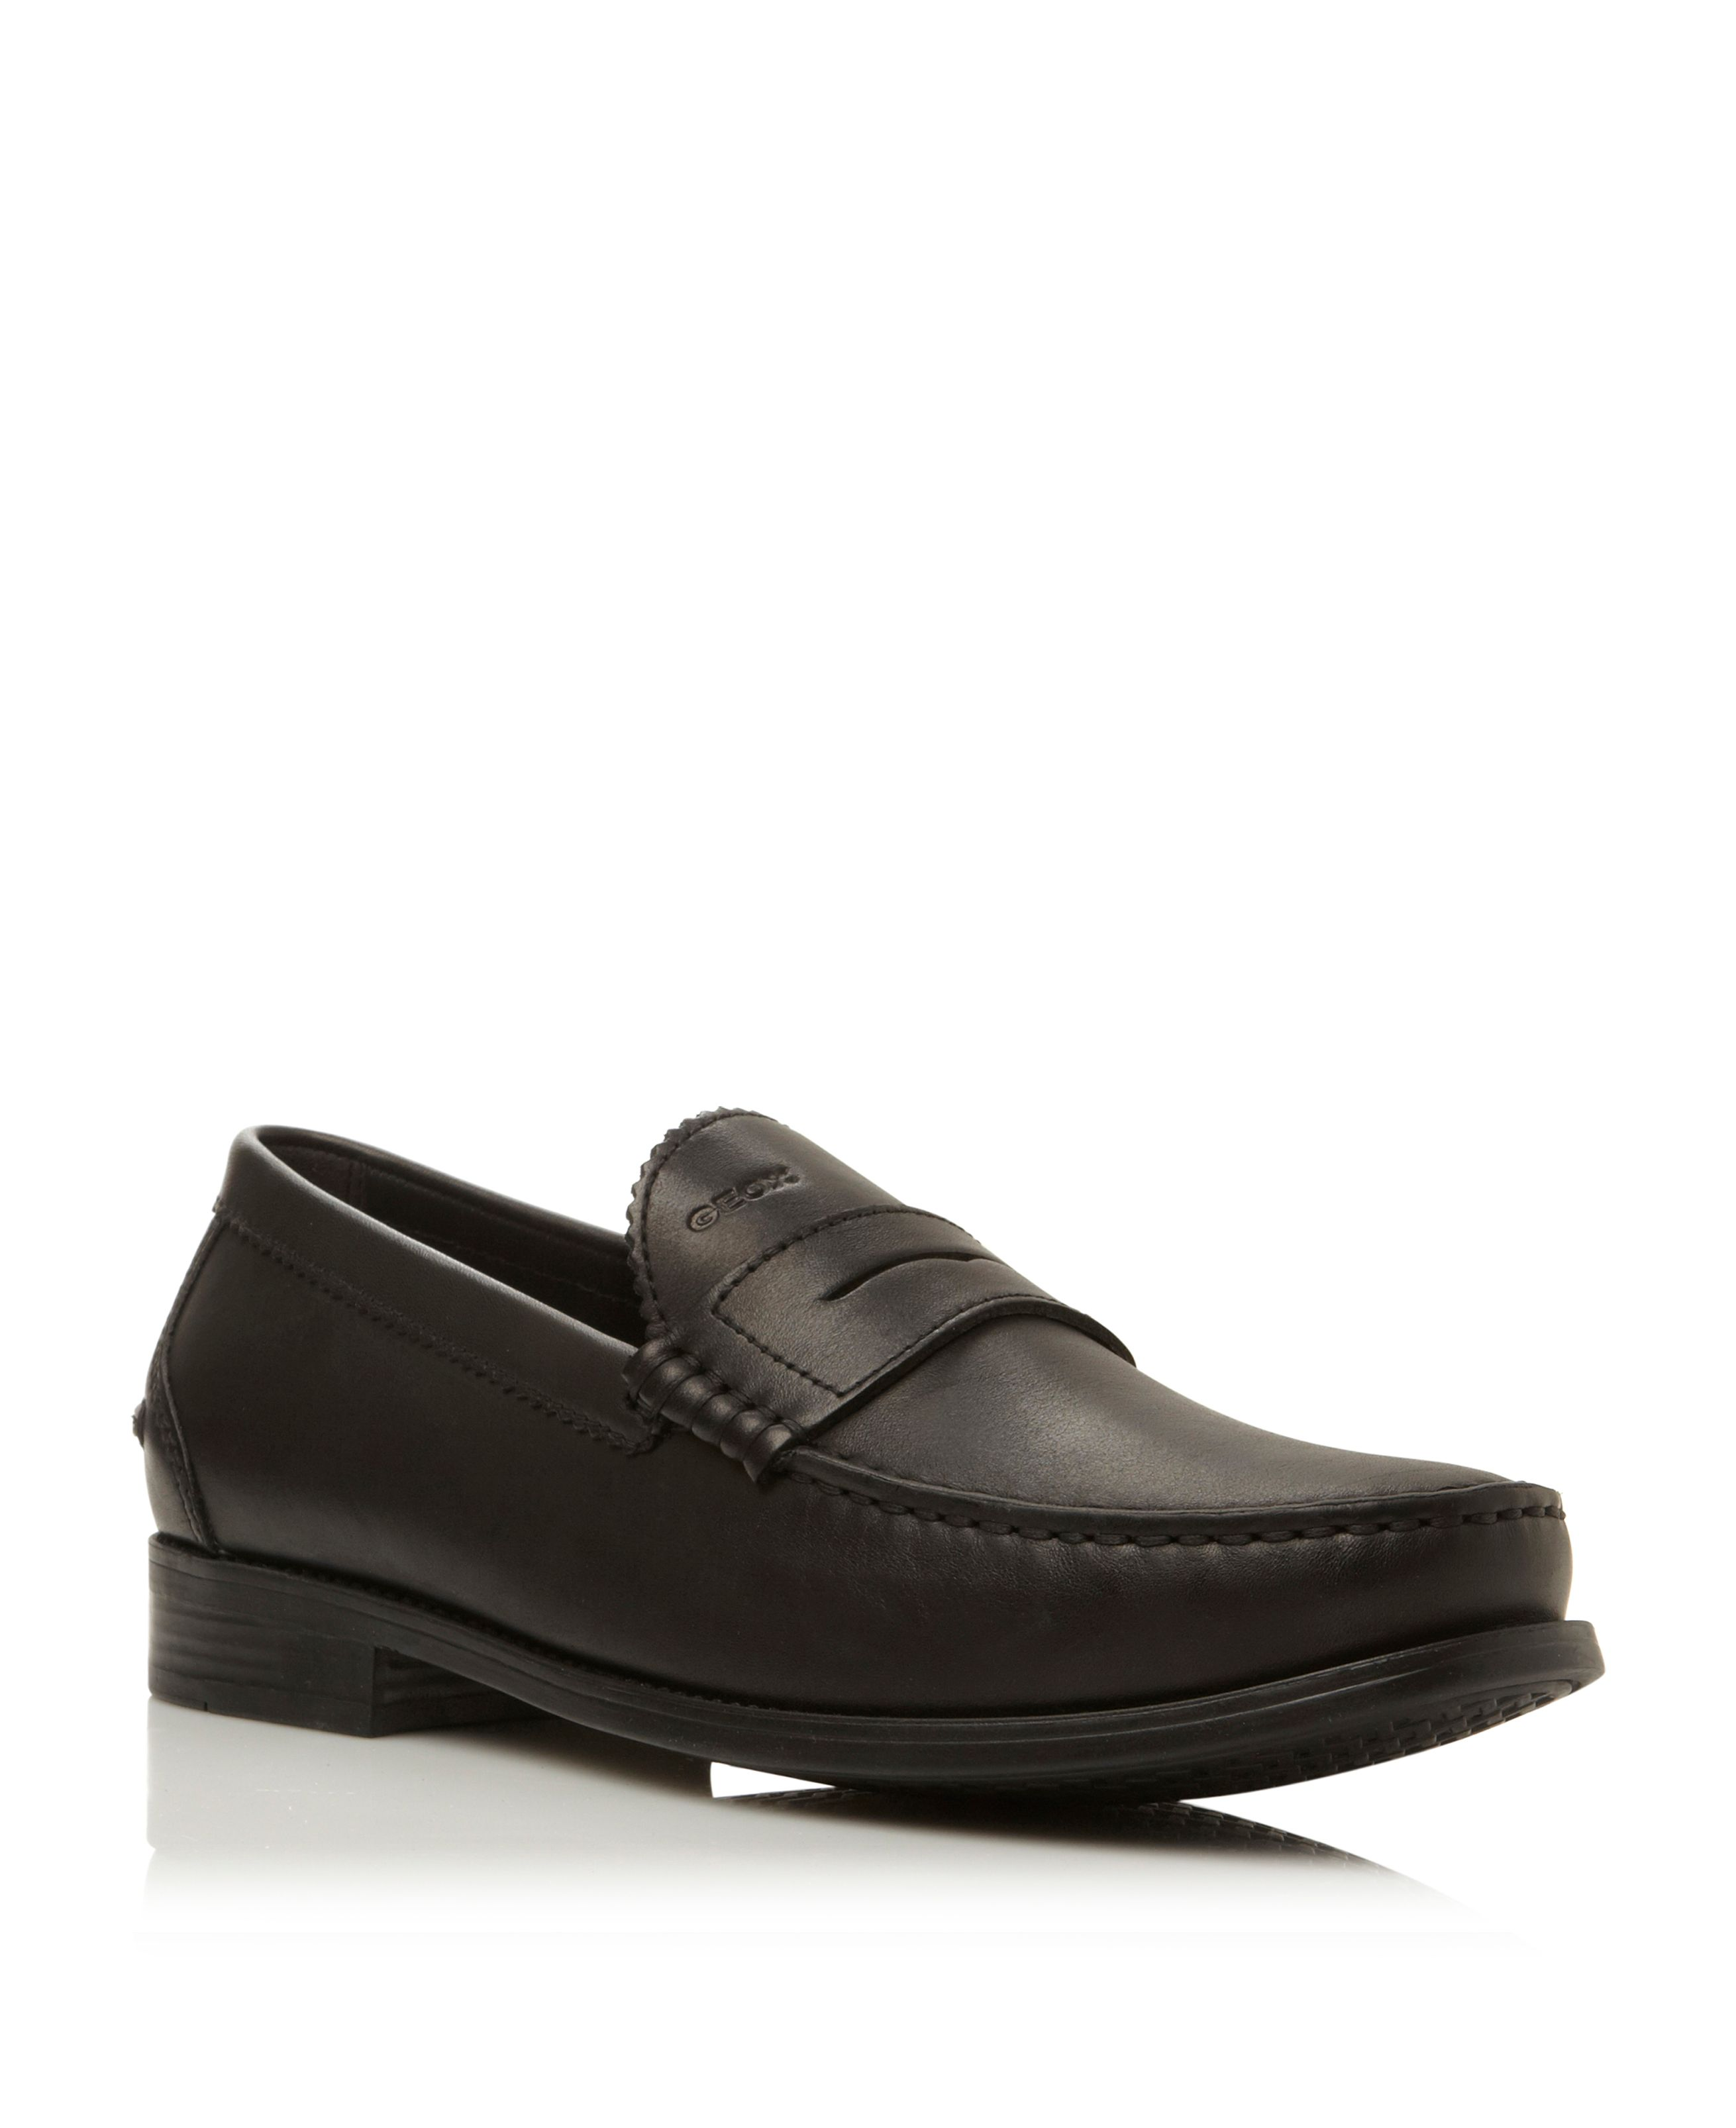 Damon u24w6b lace up smart penny loafers